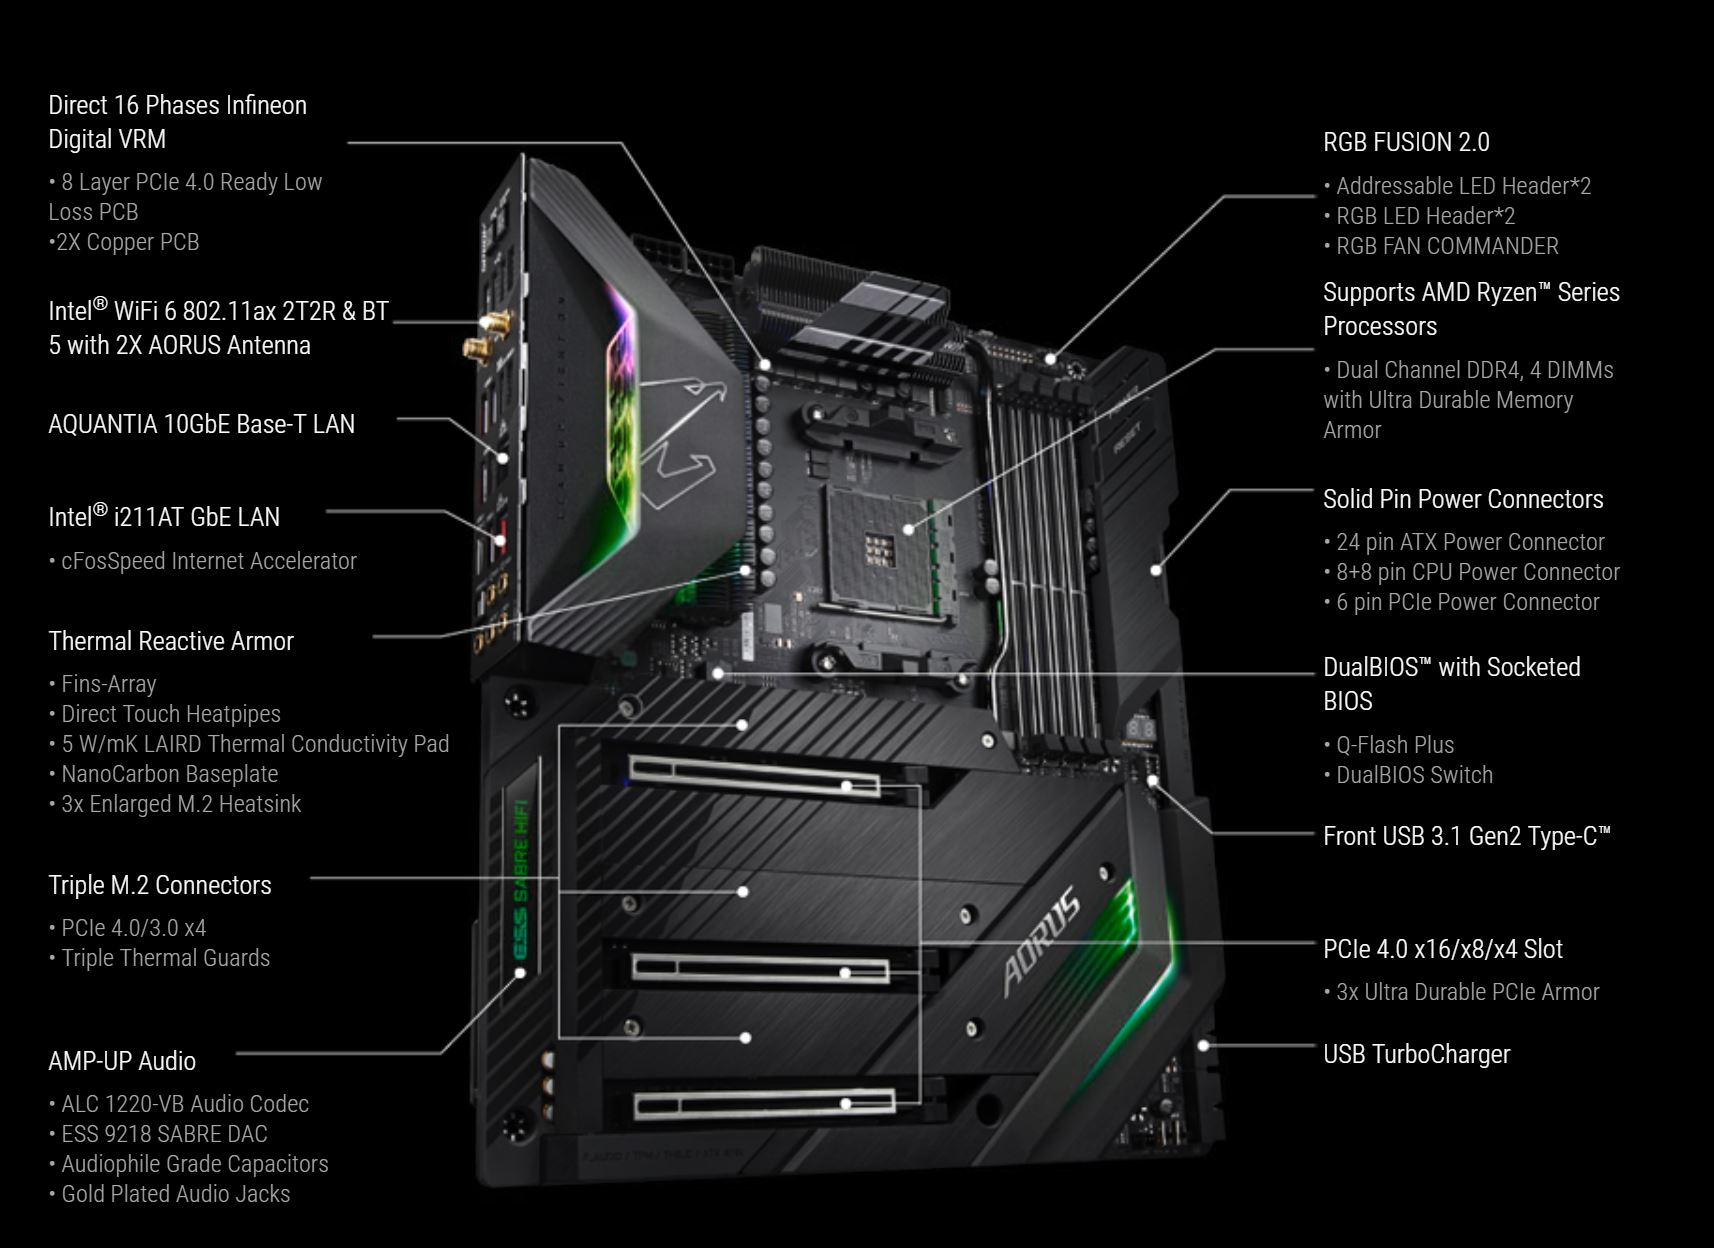 GIGABYTE announces X570 AORUS XTREME motherboard with 16-phase VRM